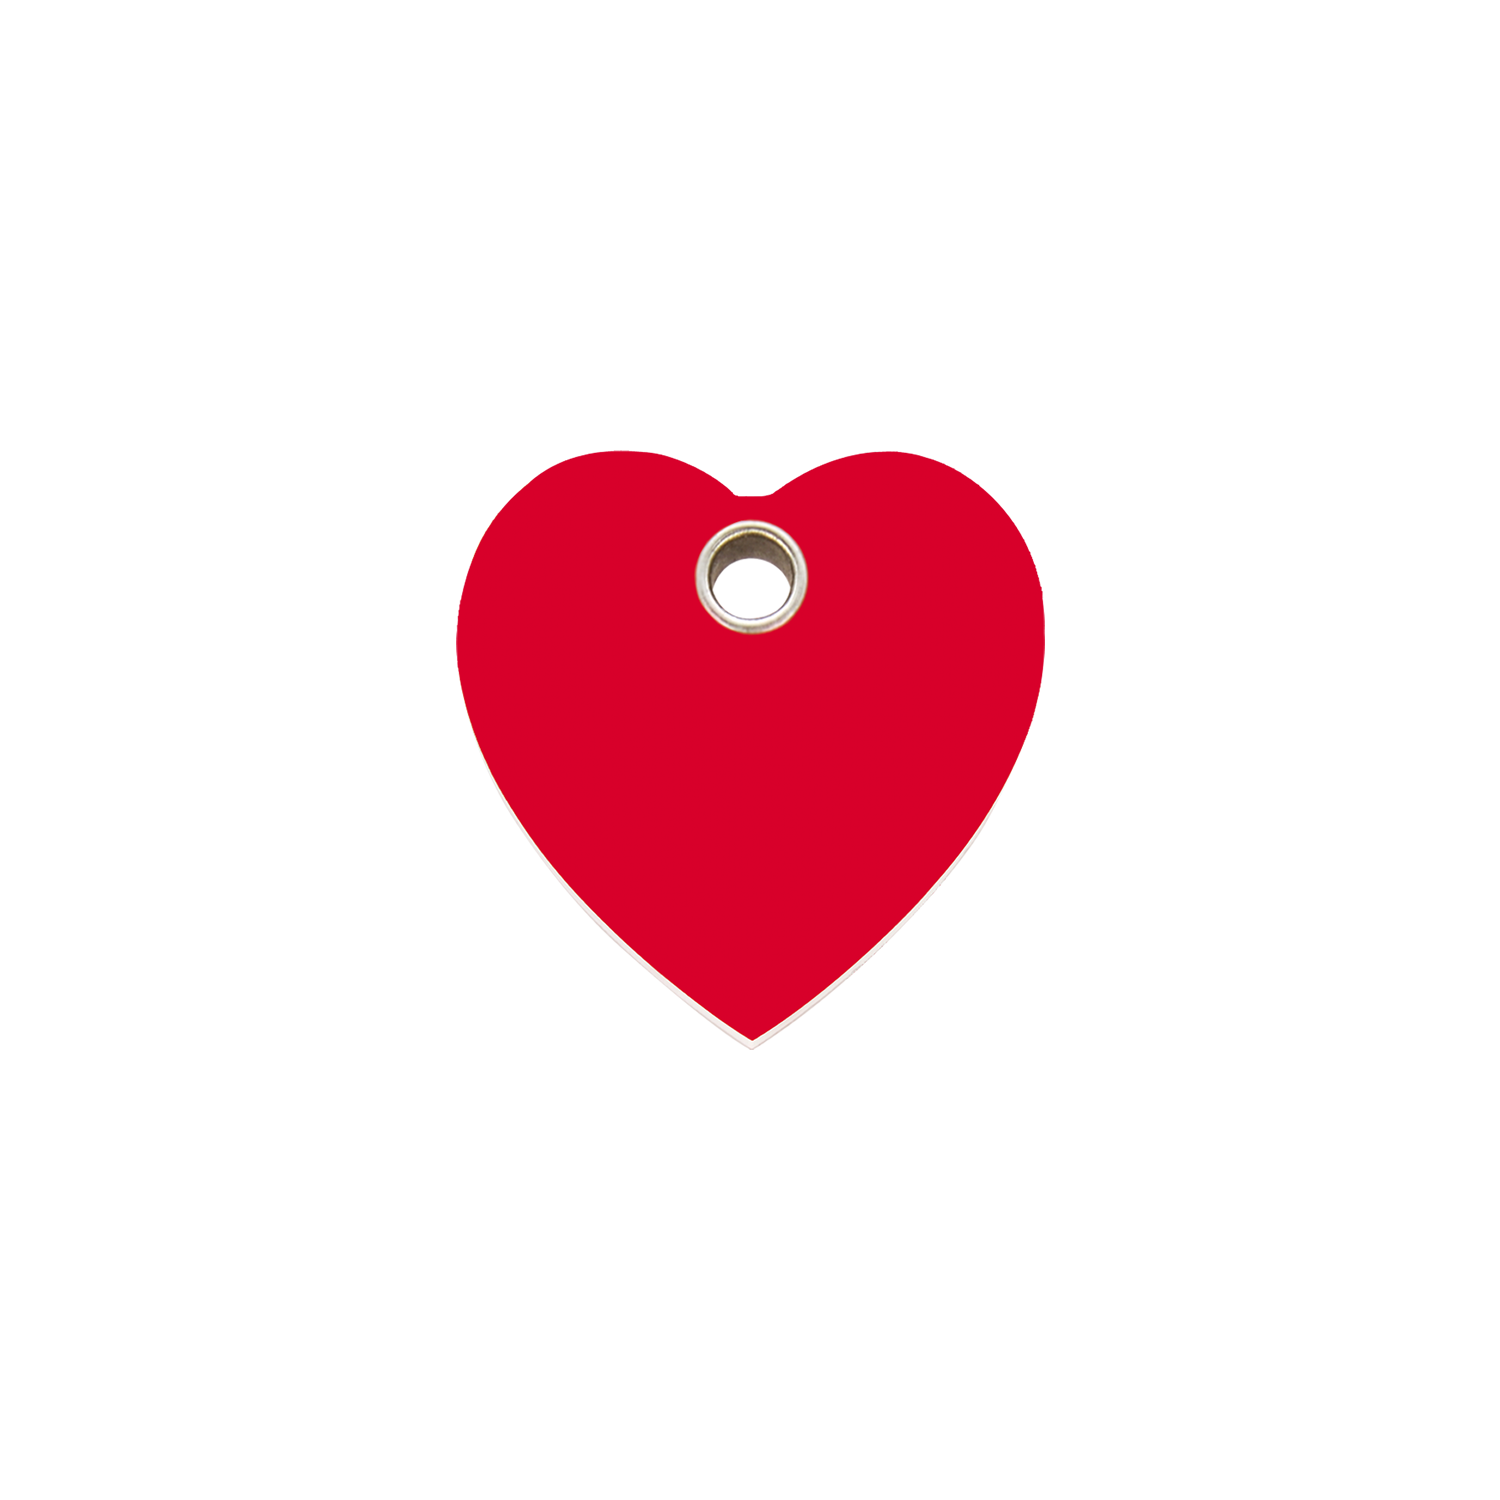 Red Dingo Plastic Tag Heart Red 04 Ht Re 4htrs 4htrm 4htrl